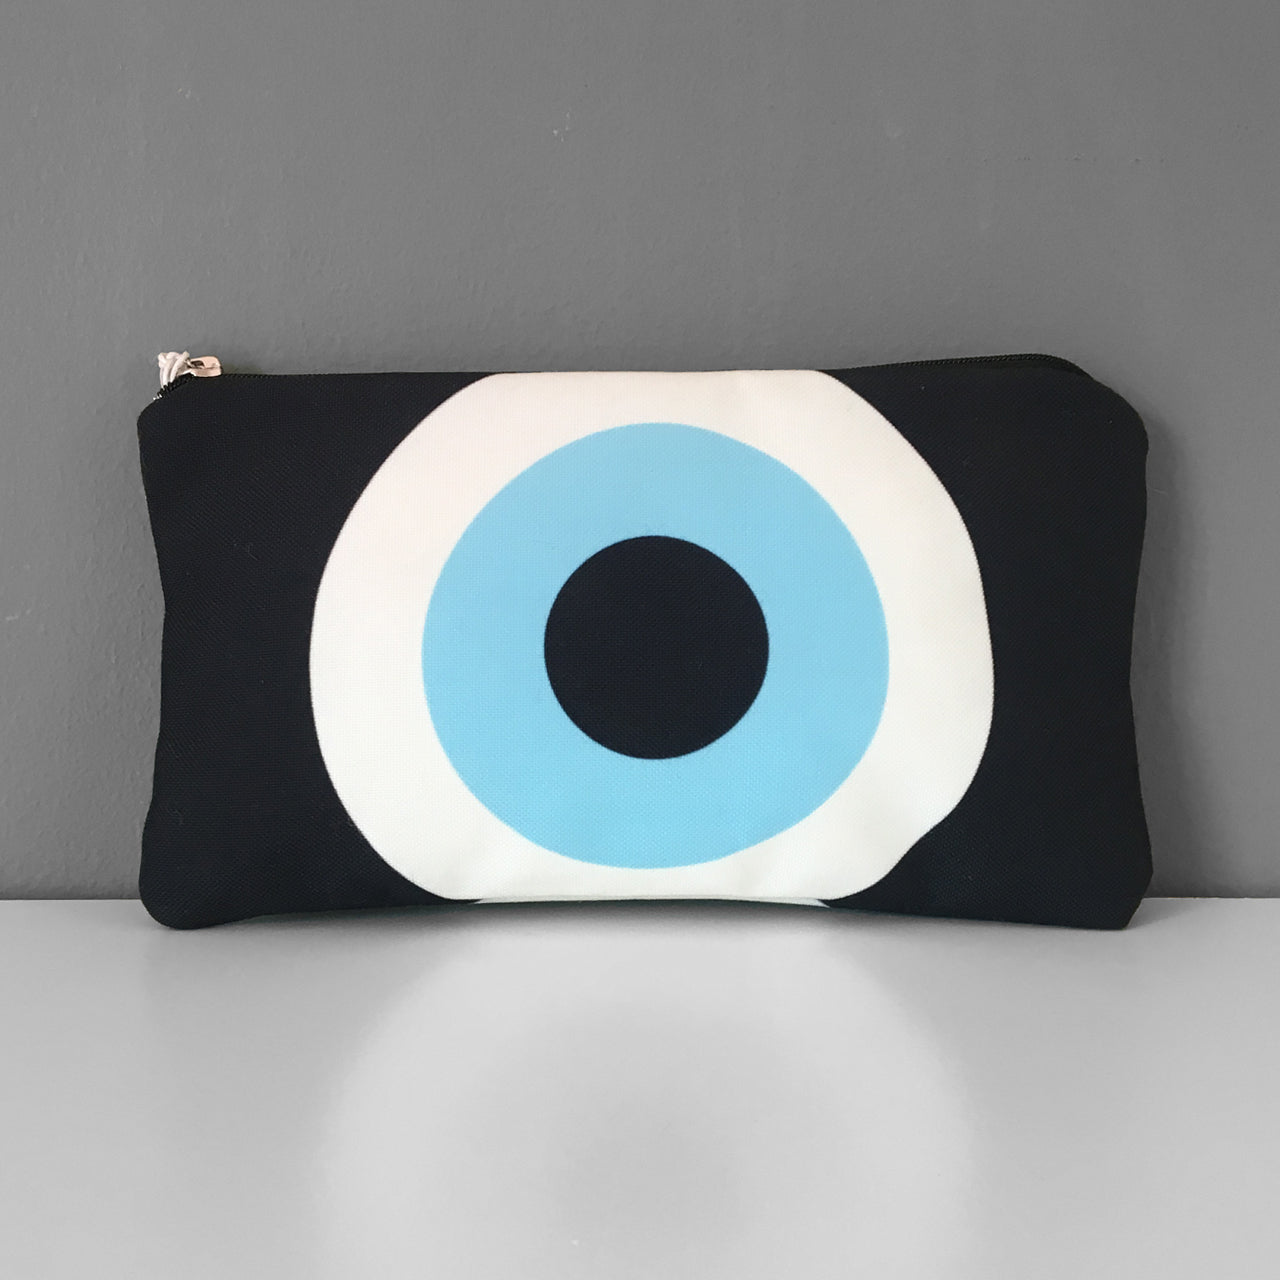 Black Evil Eye cosmetic bag